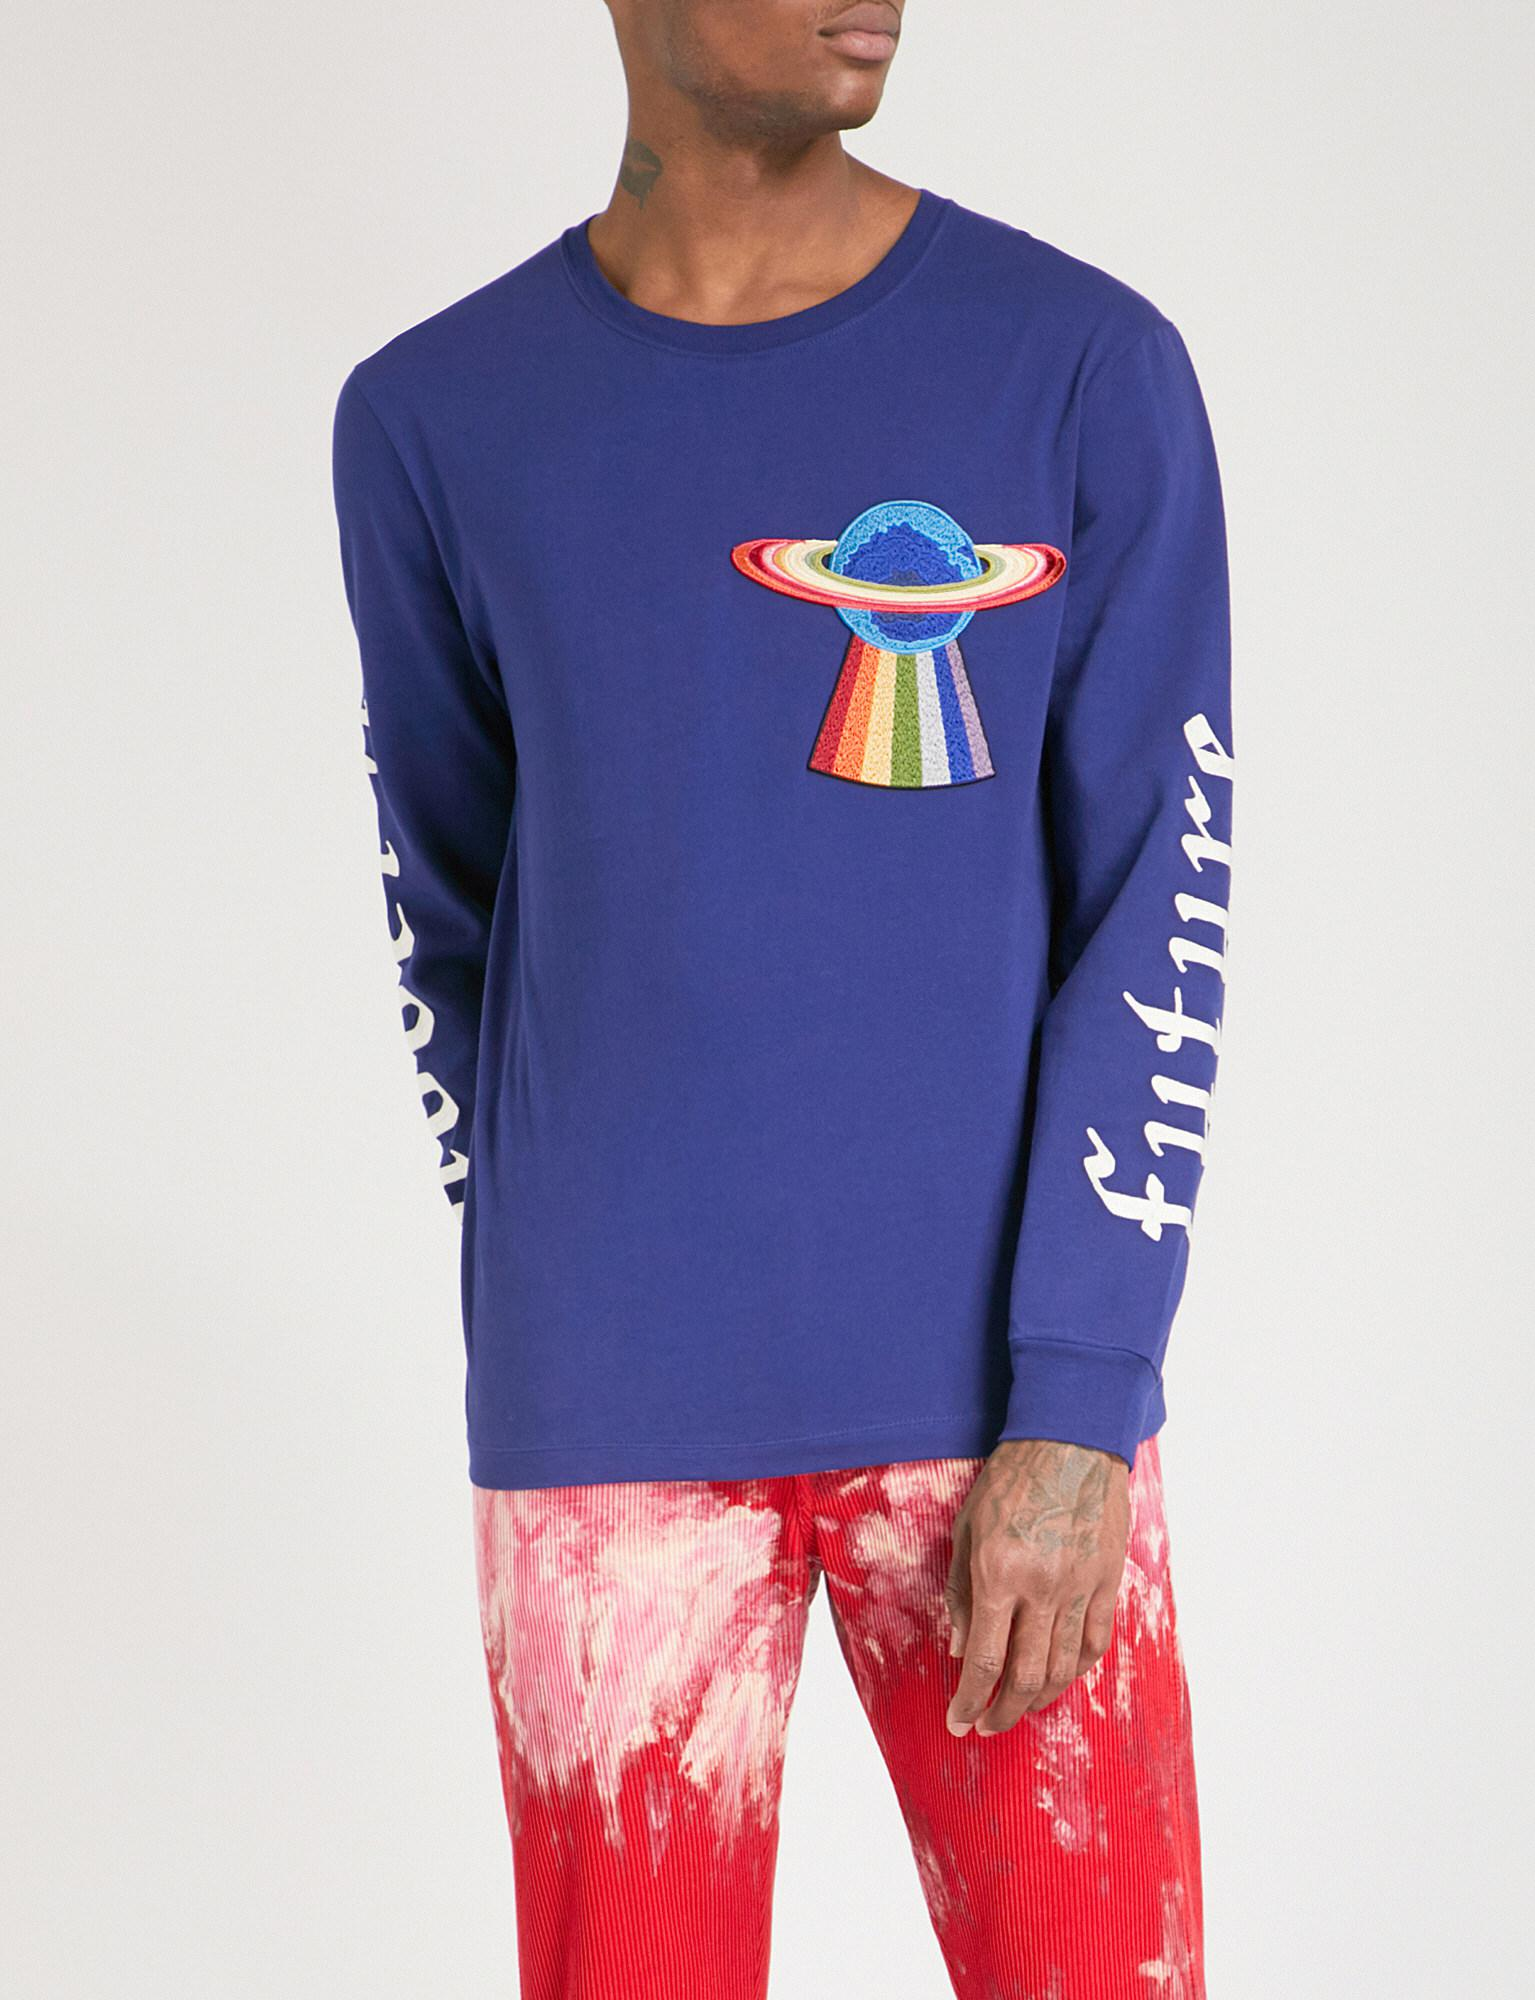 48819cae98a9 Gucci Ufo-embroidered Cotton-jersey T-shirt in Blue for Men - Lyst